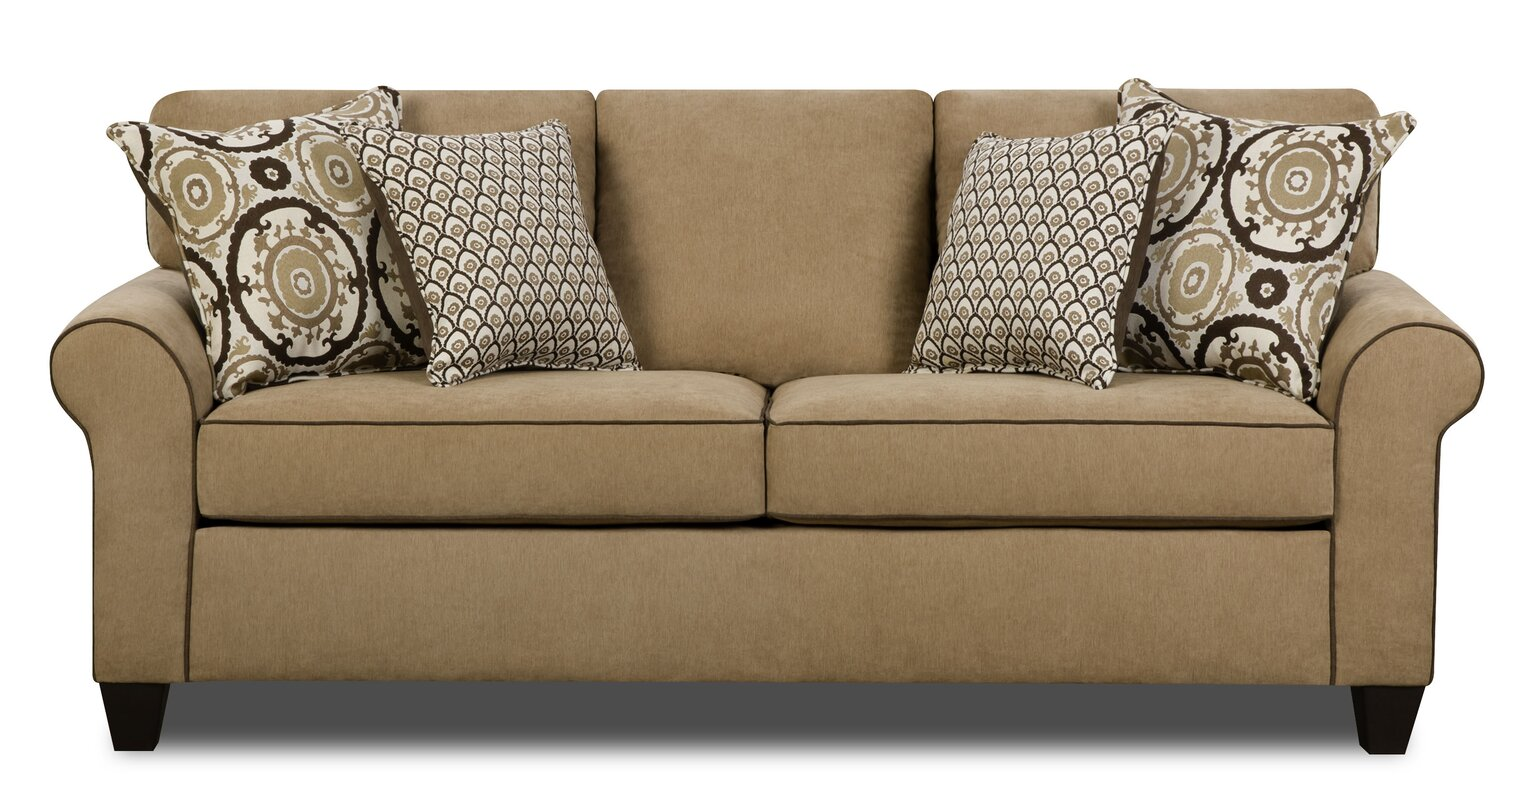 Darby Home Co Simmons Upholstery Milligan Sofa & Reviews